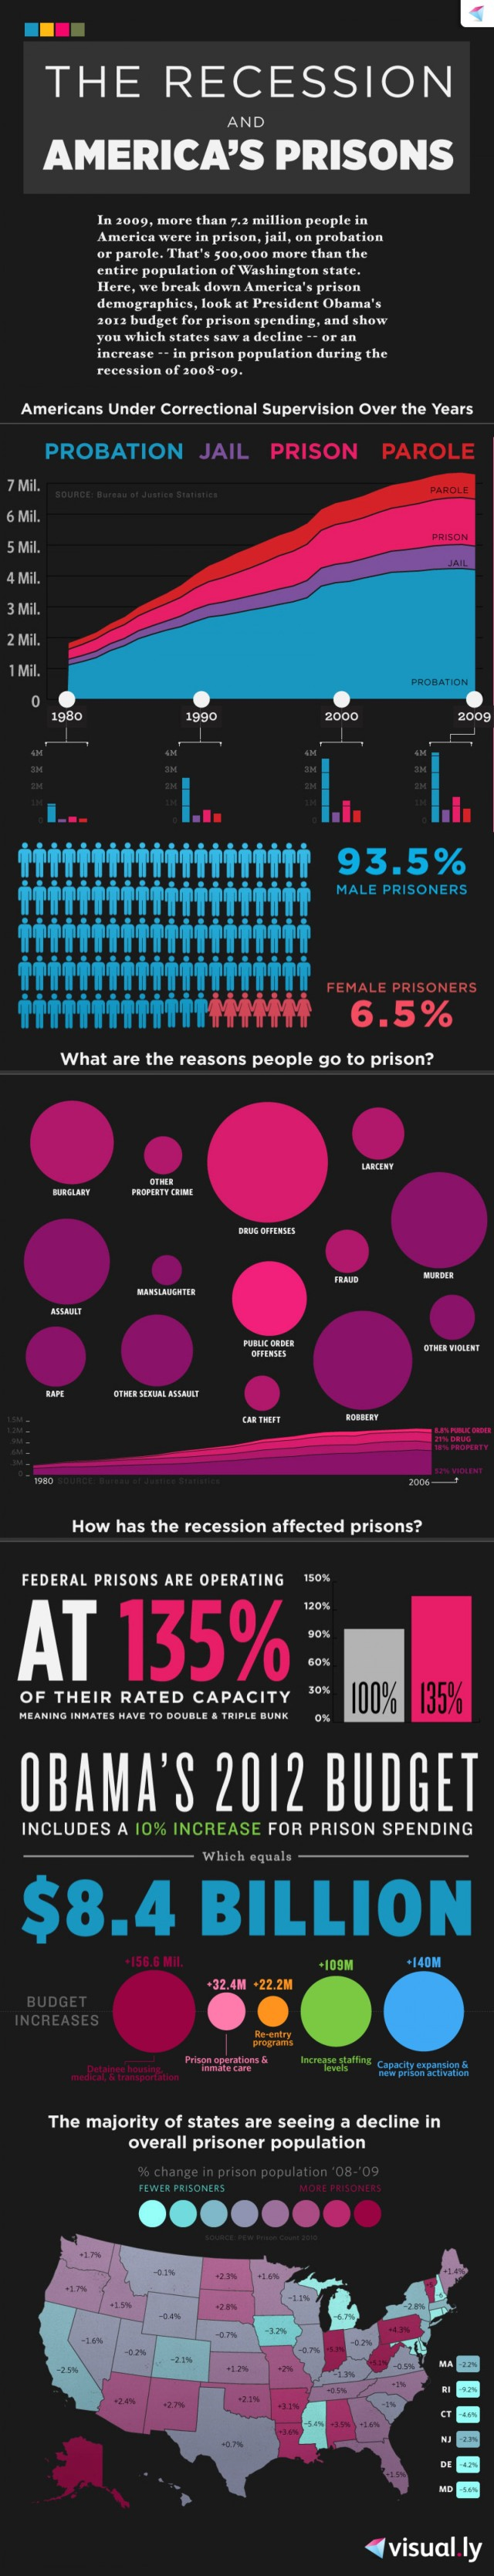 the-recession-and-americas-prisons_50290d31bf174_w1500